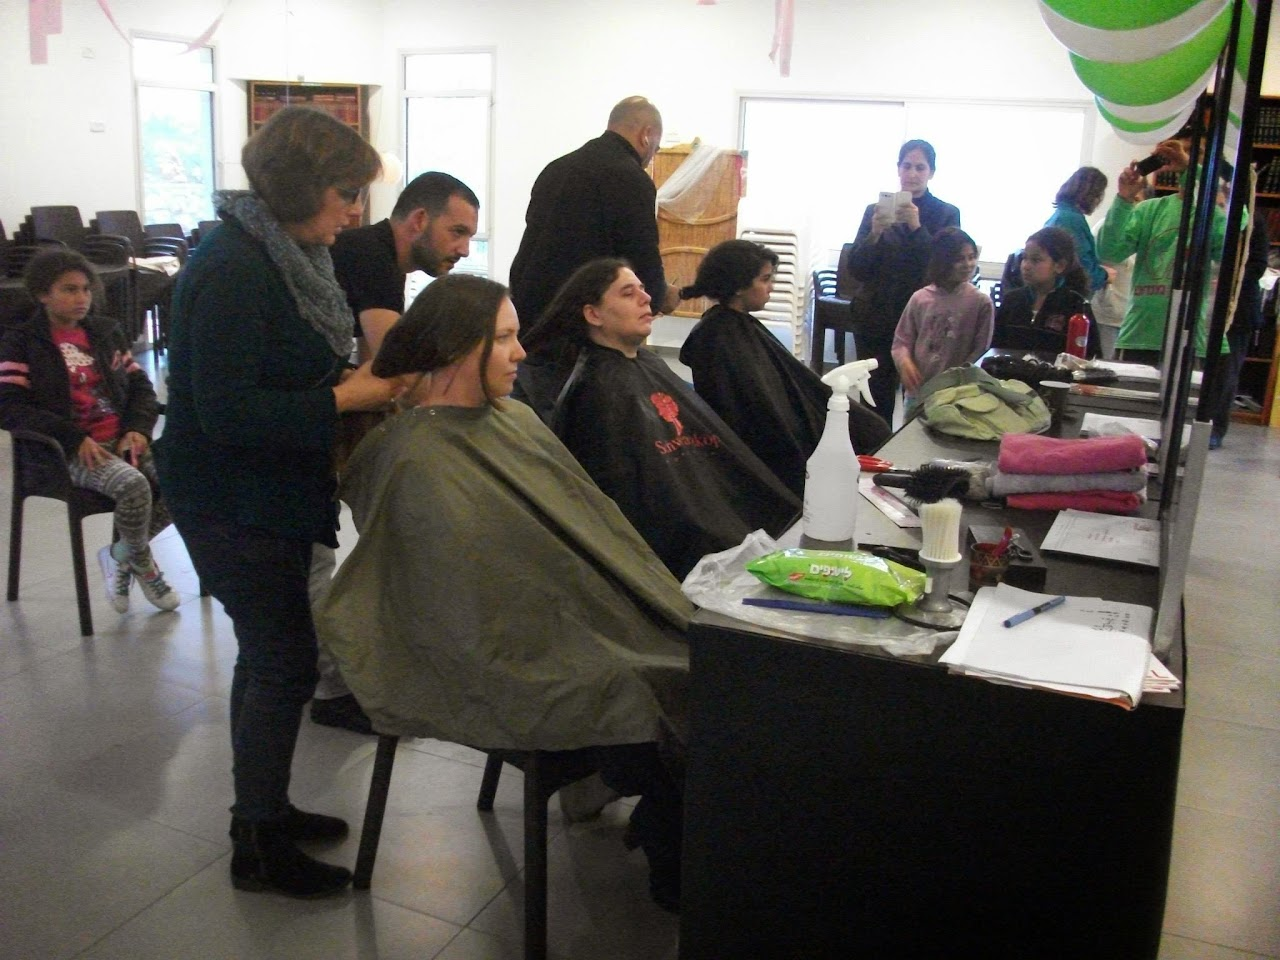 Donating hair for cancer patients 2014  - 1658447_539676249482006_807248507_o.jpg